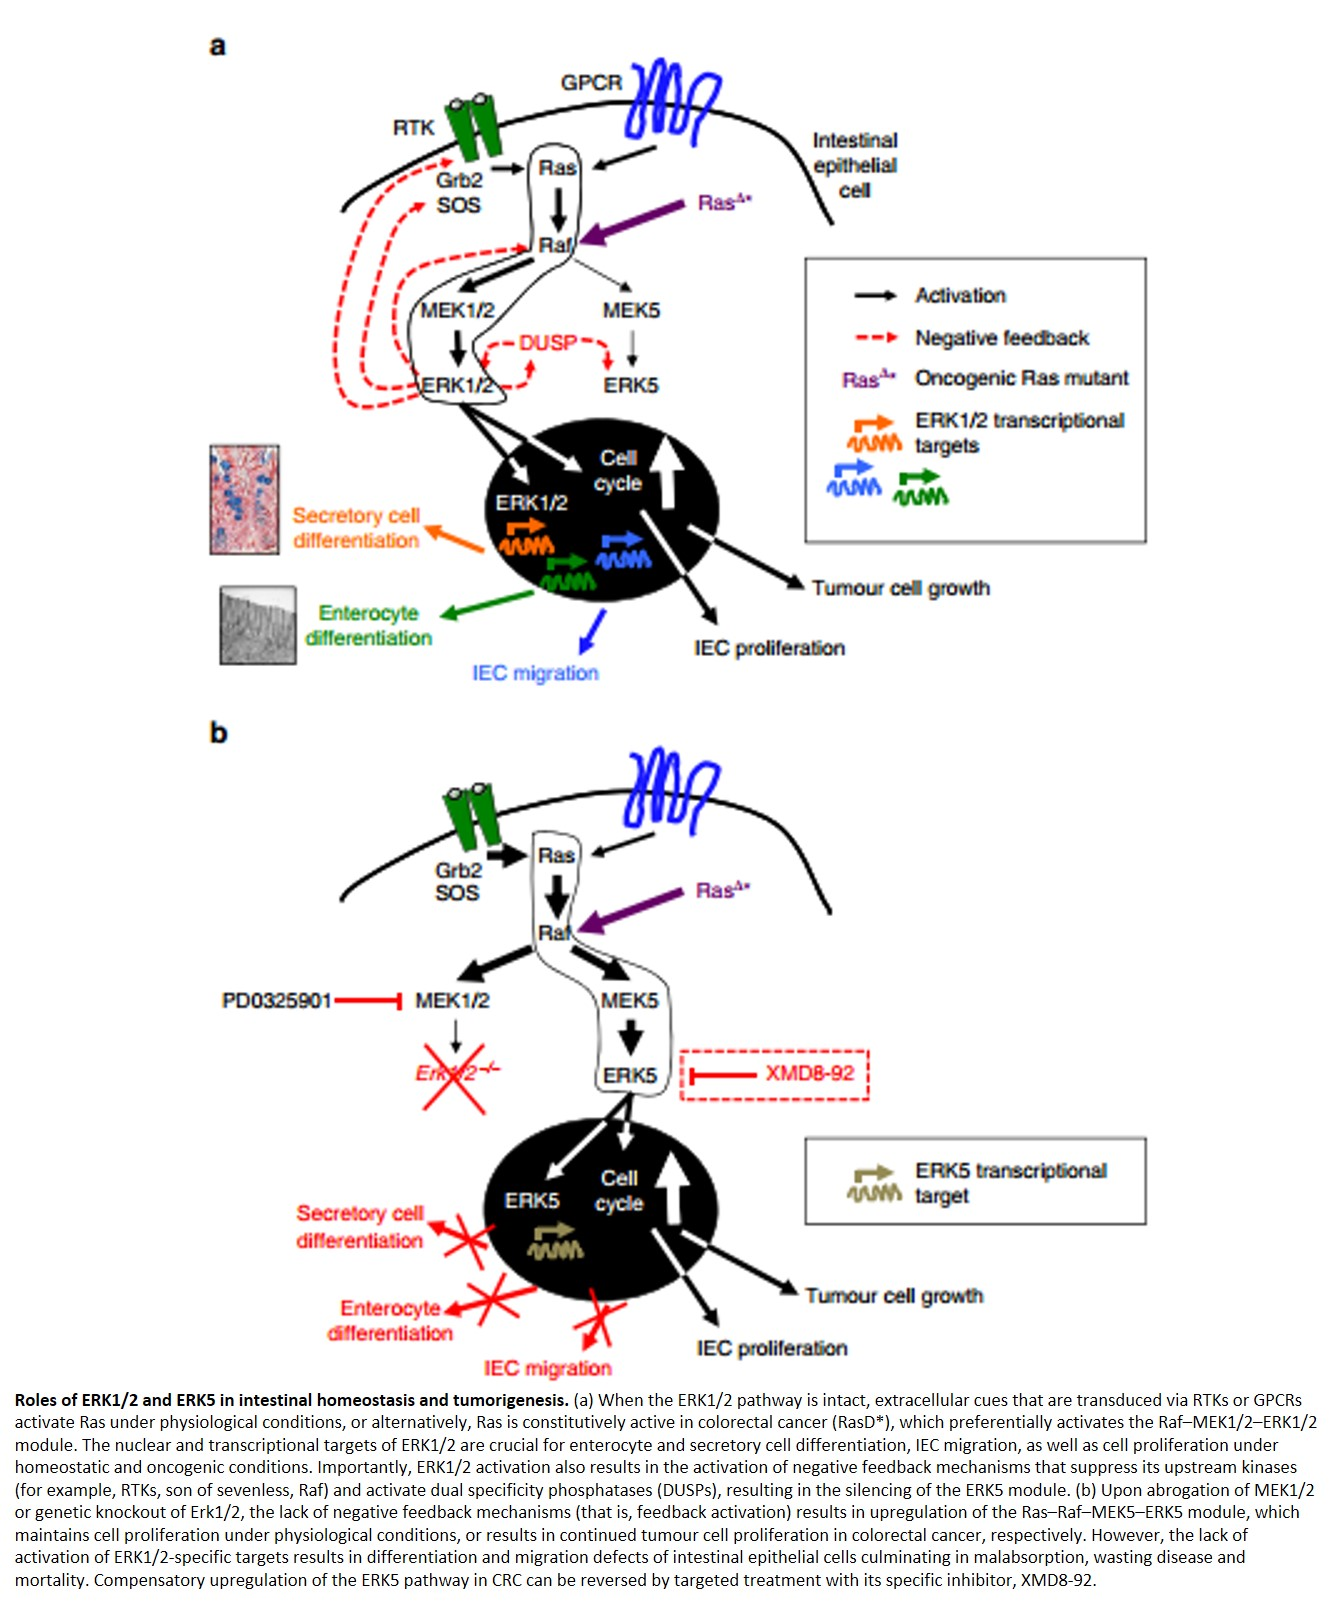 A new tumor-promoting pathway